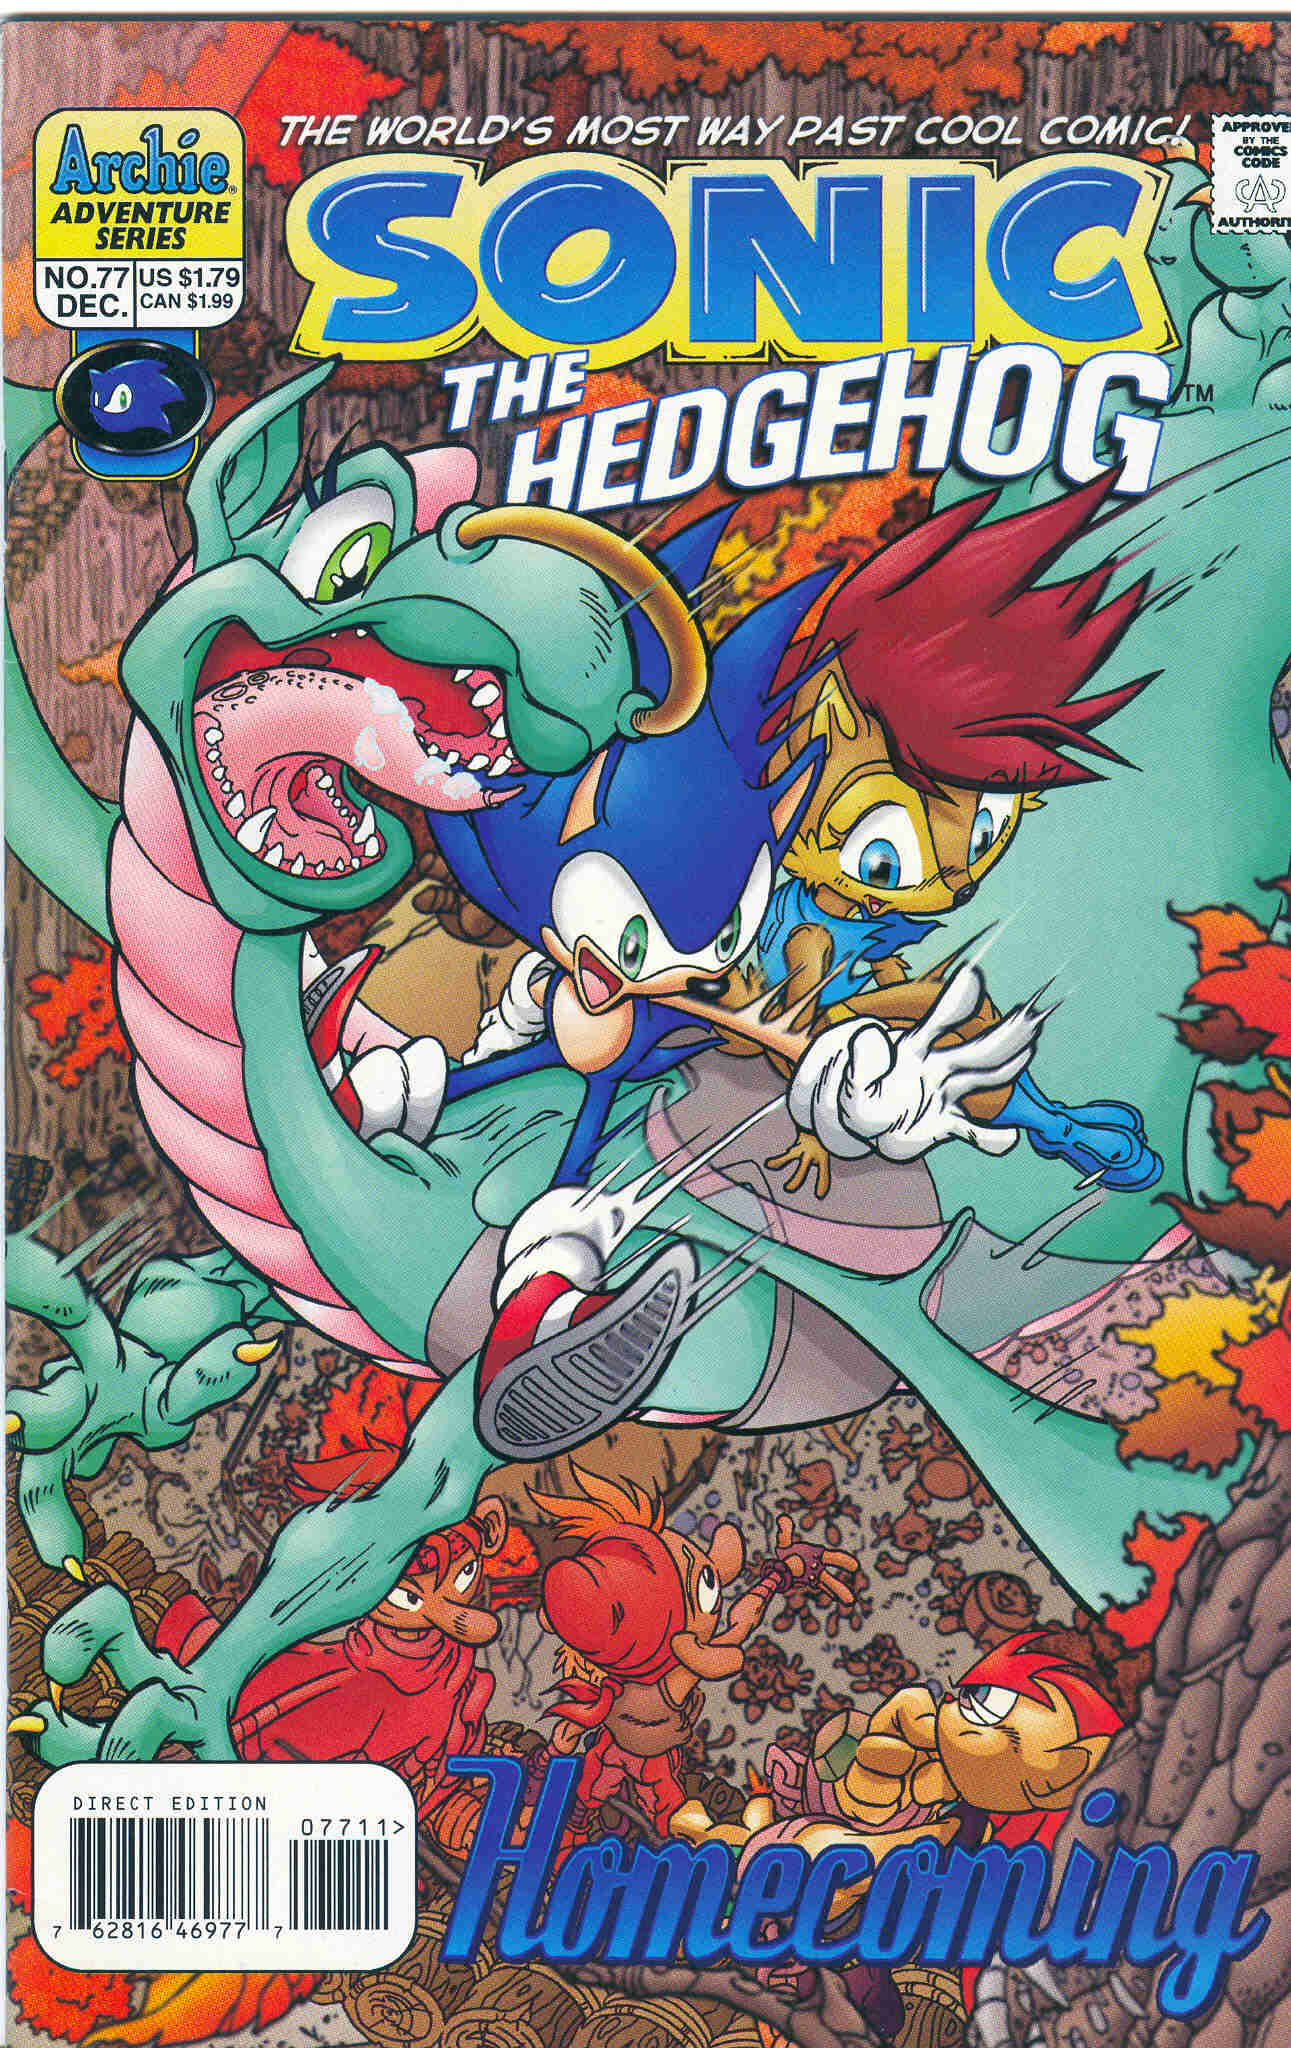 Sonic - Archie Adventure Series December 1999 Comic cover page